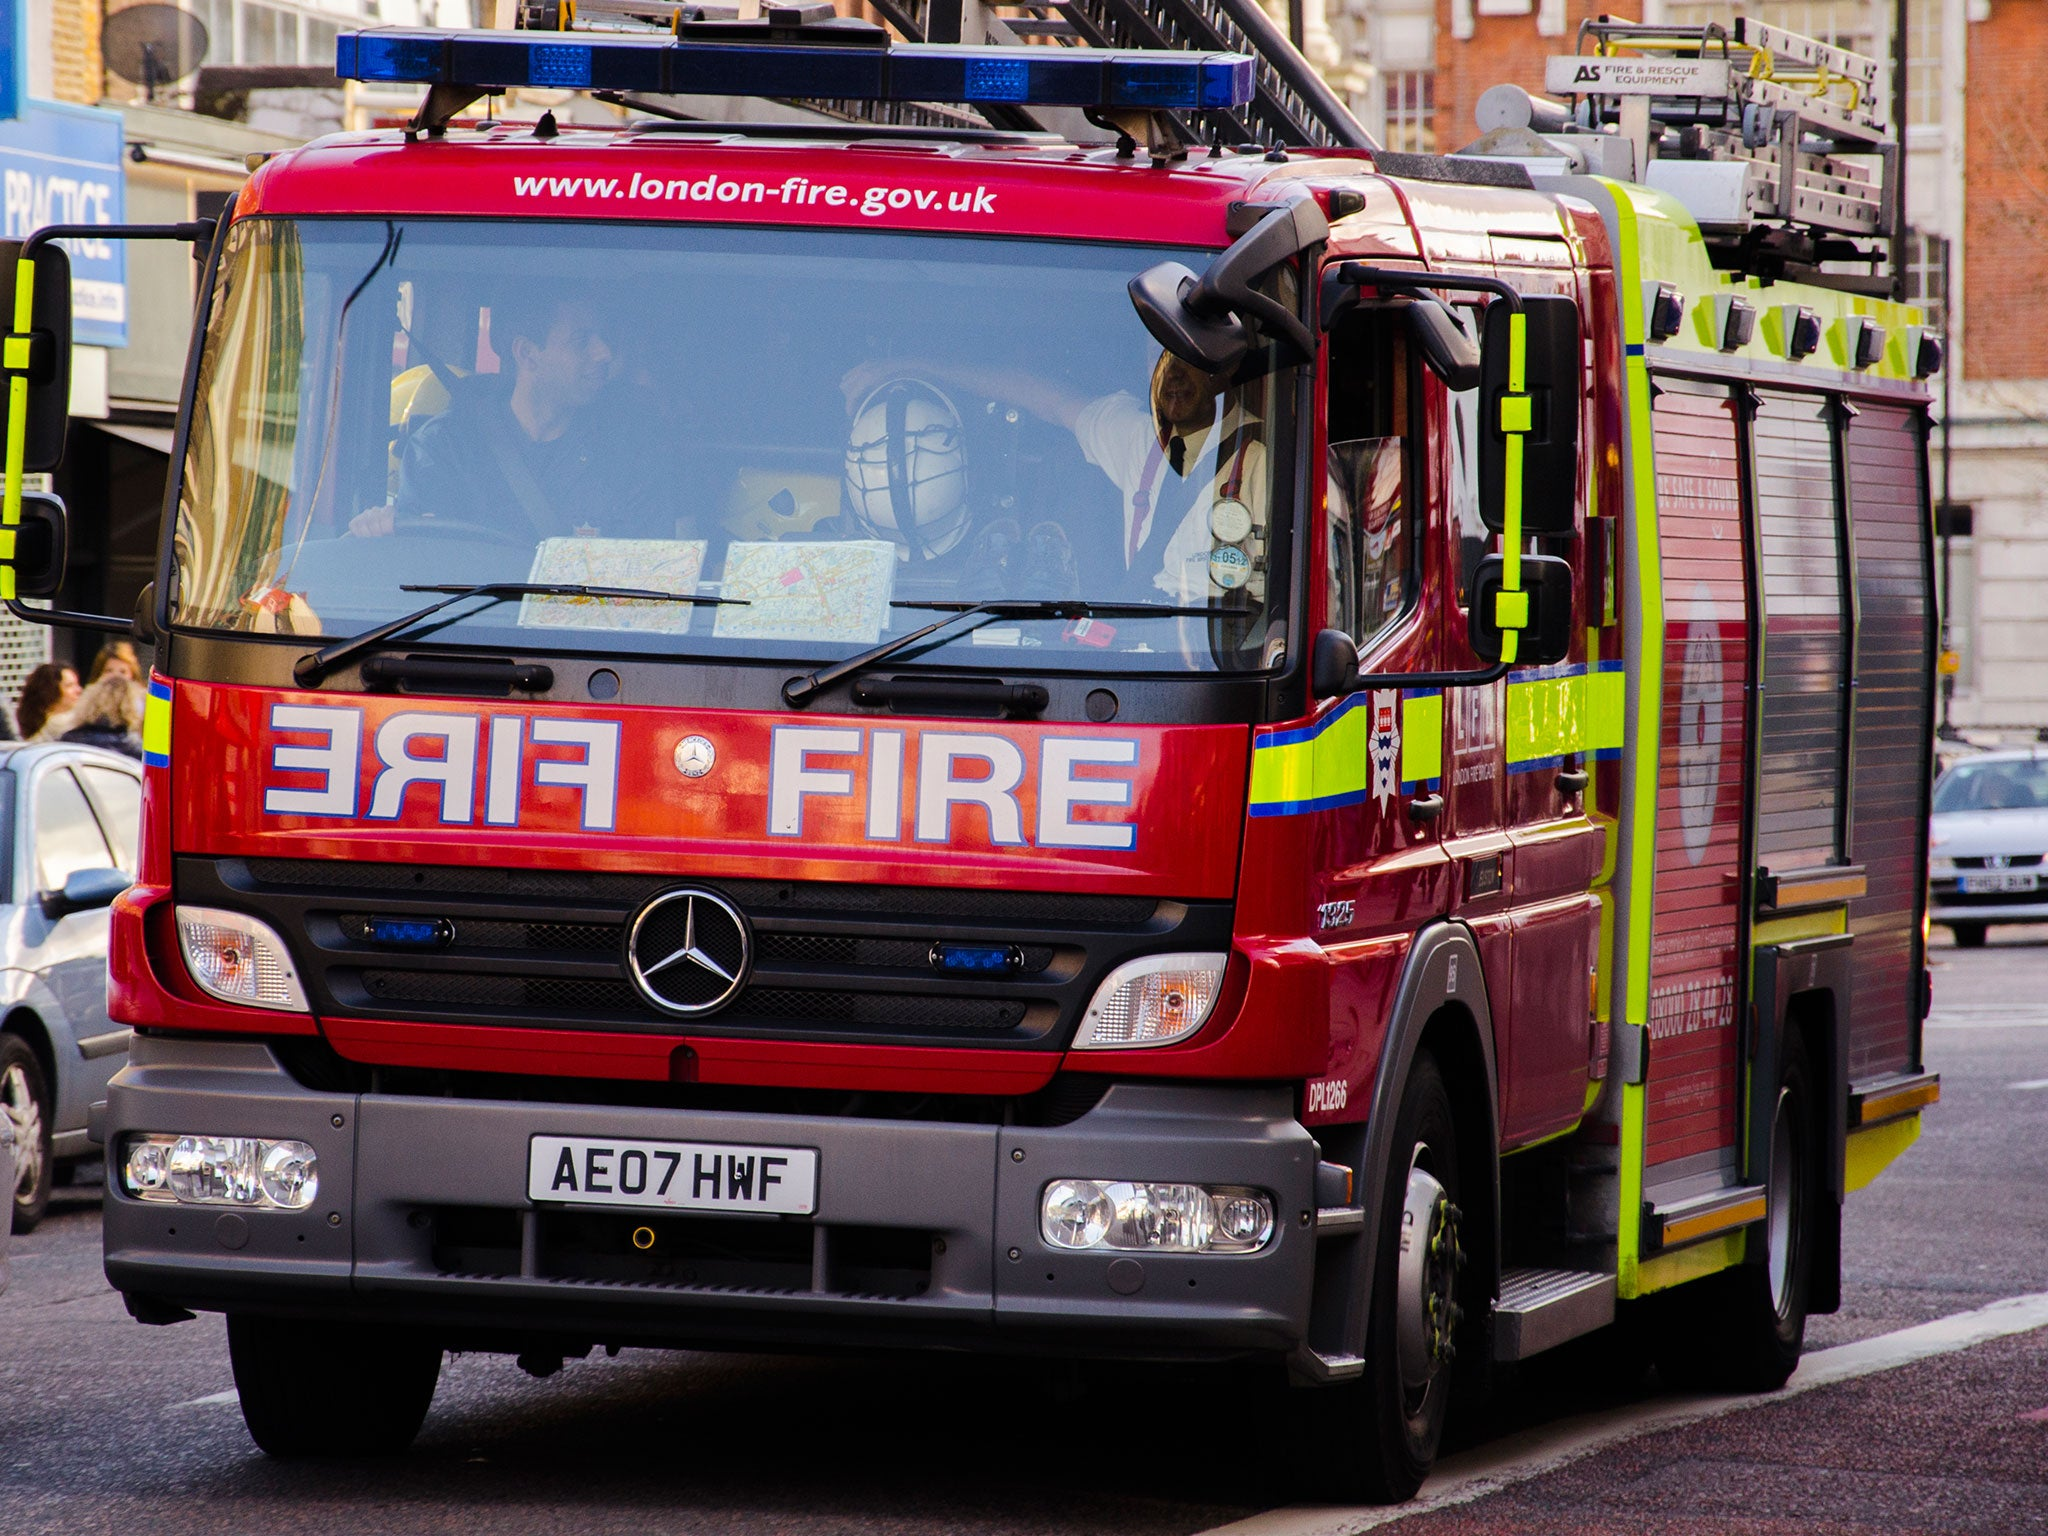 arson - latest news, breaking stories and comment - The ...